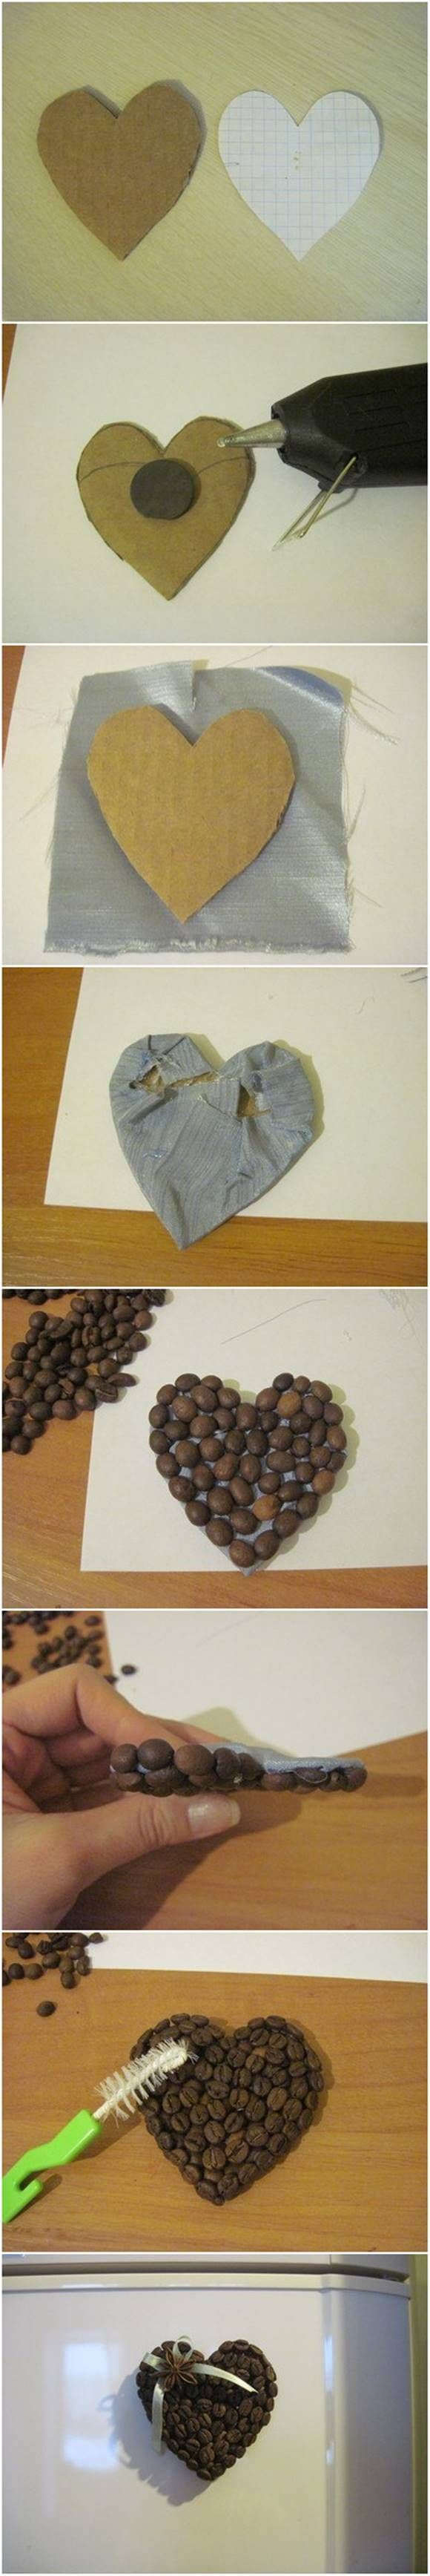 How to Make A Fridge Magnet from Coffee Beans #craft #decor #coffee_bean